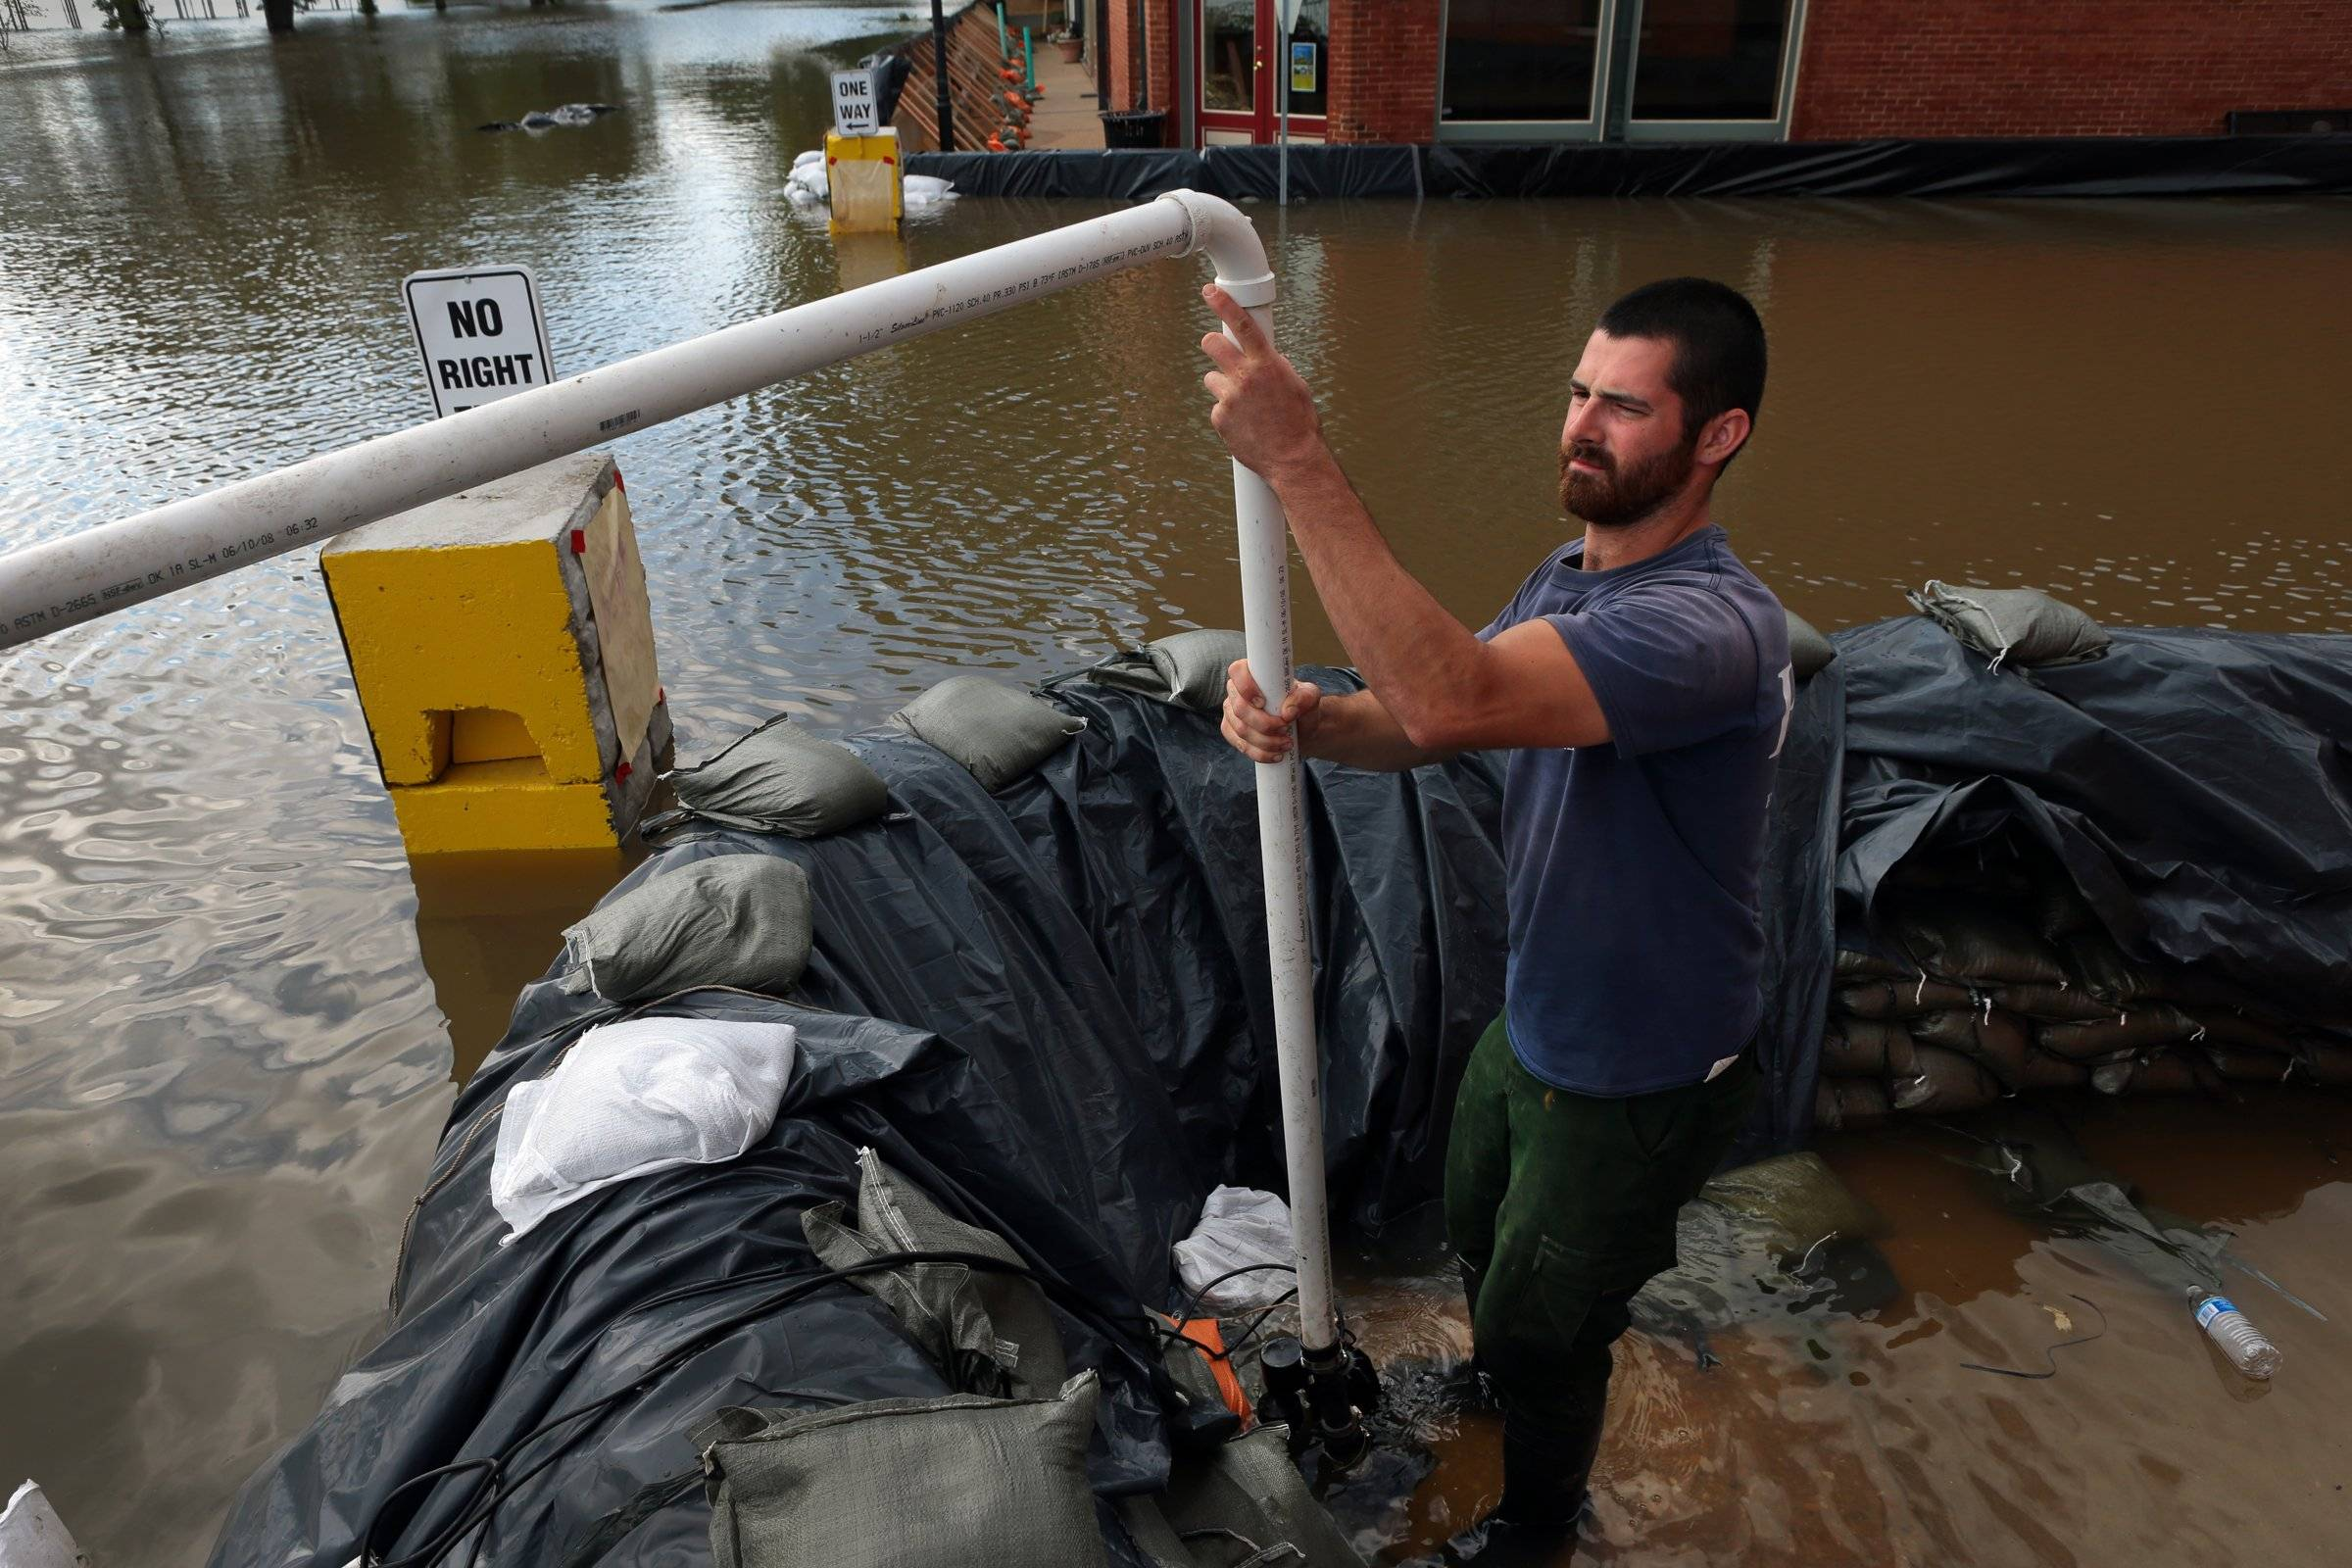 Will Burks, of AmeriCorps St. Louis, gets a sump pump ready to clear floodwater water from behind a sandbagged wall in downtown Clarksville, Mo. Tuesday, July 8, 2014.